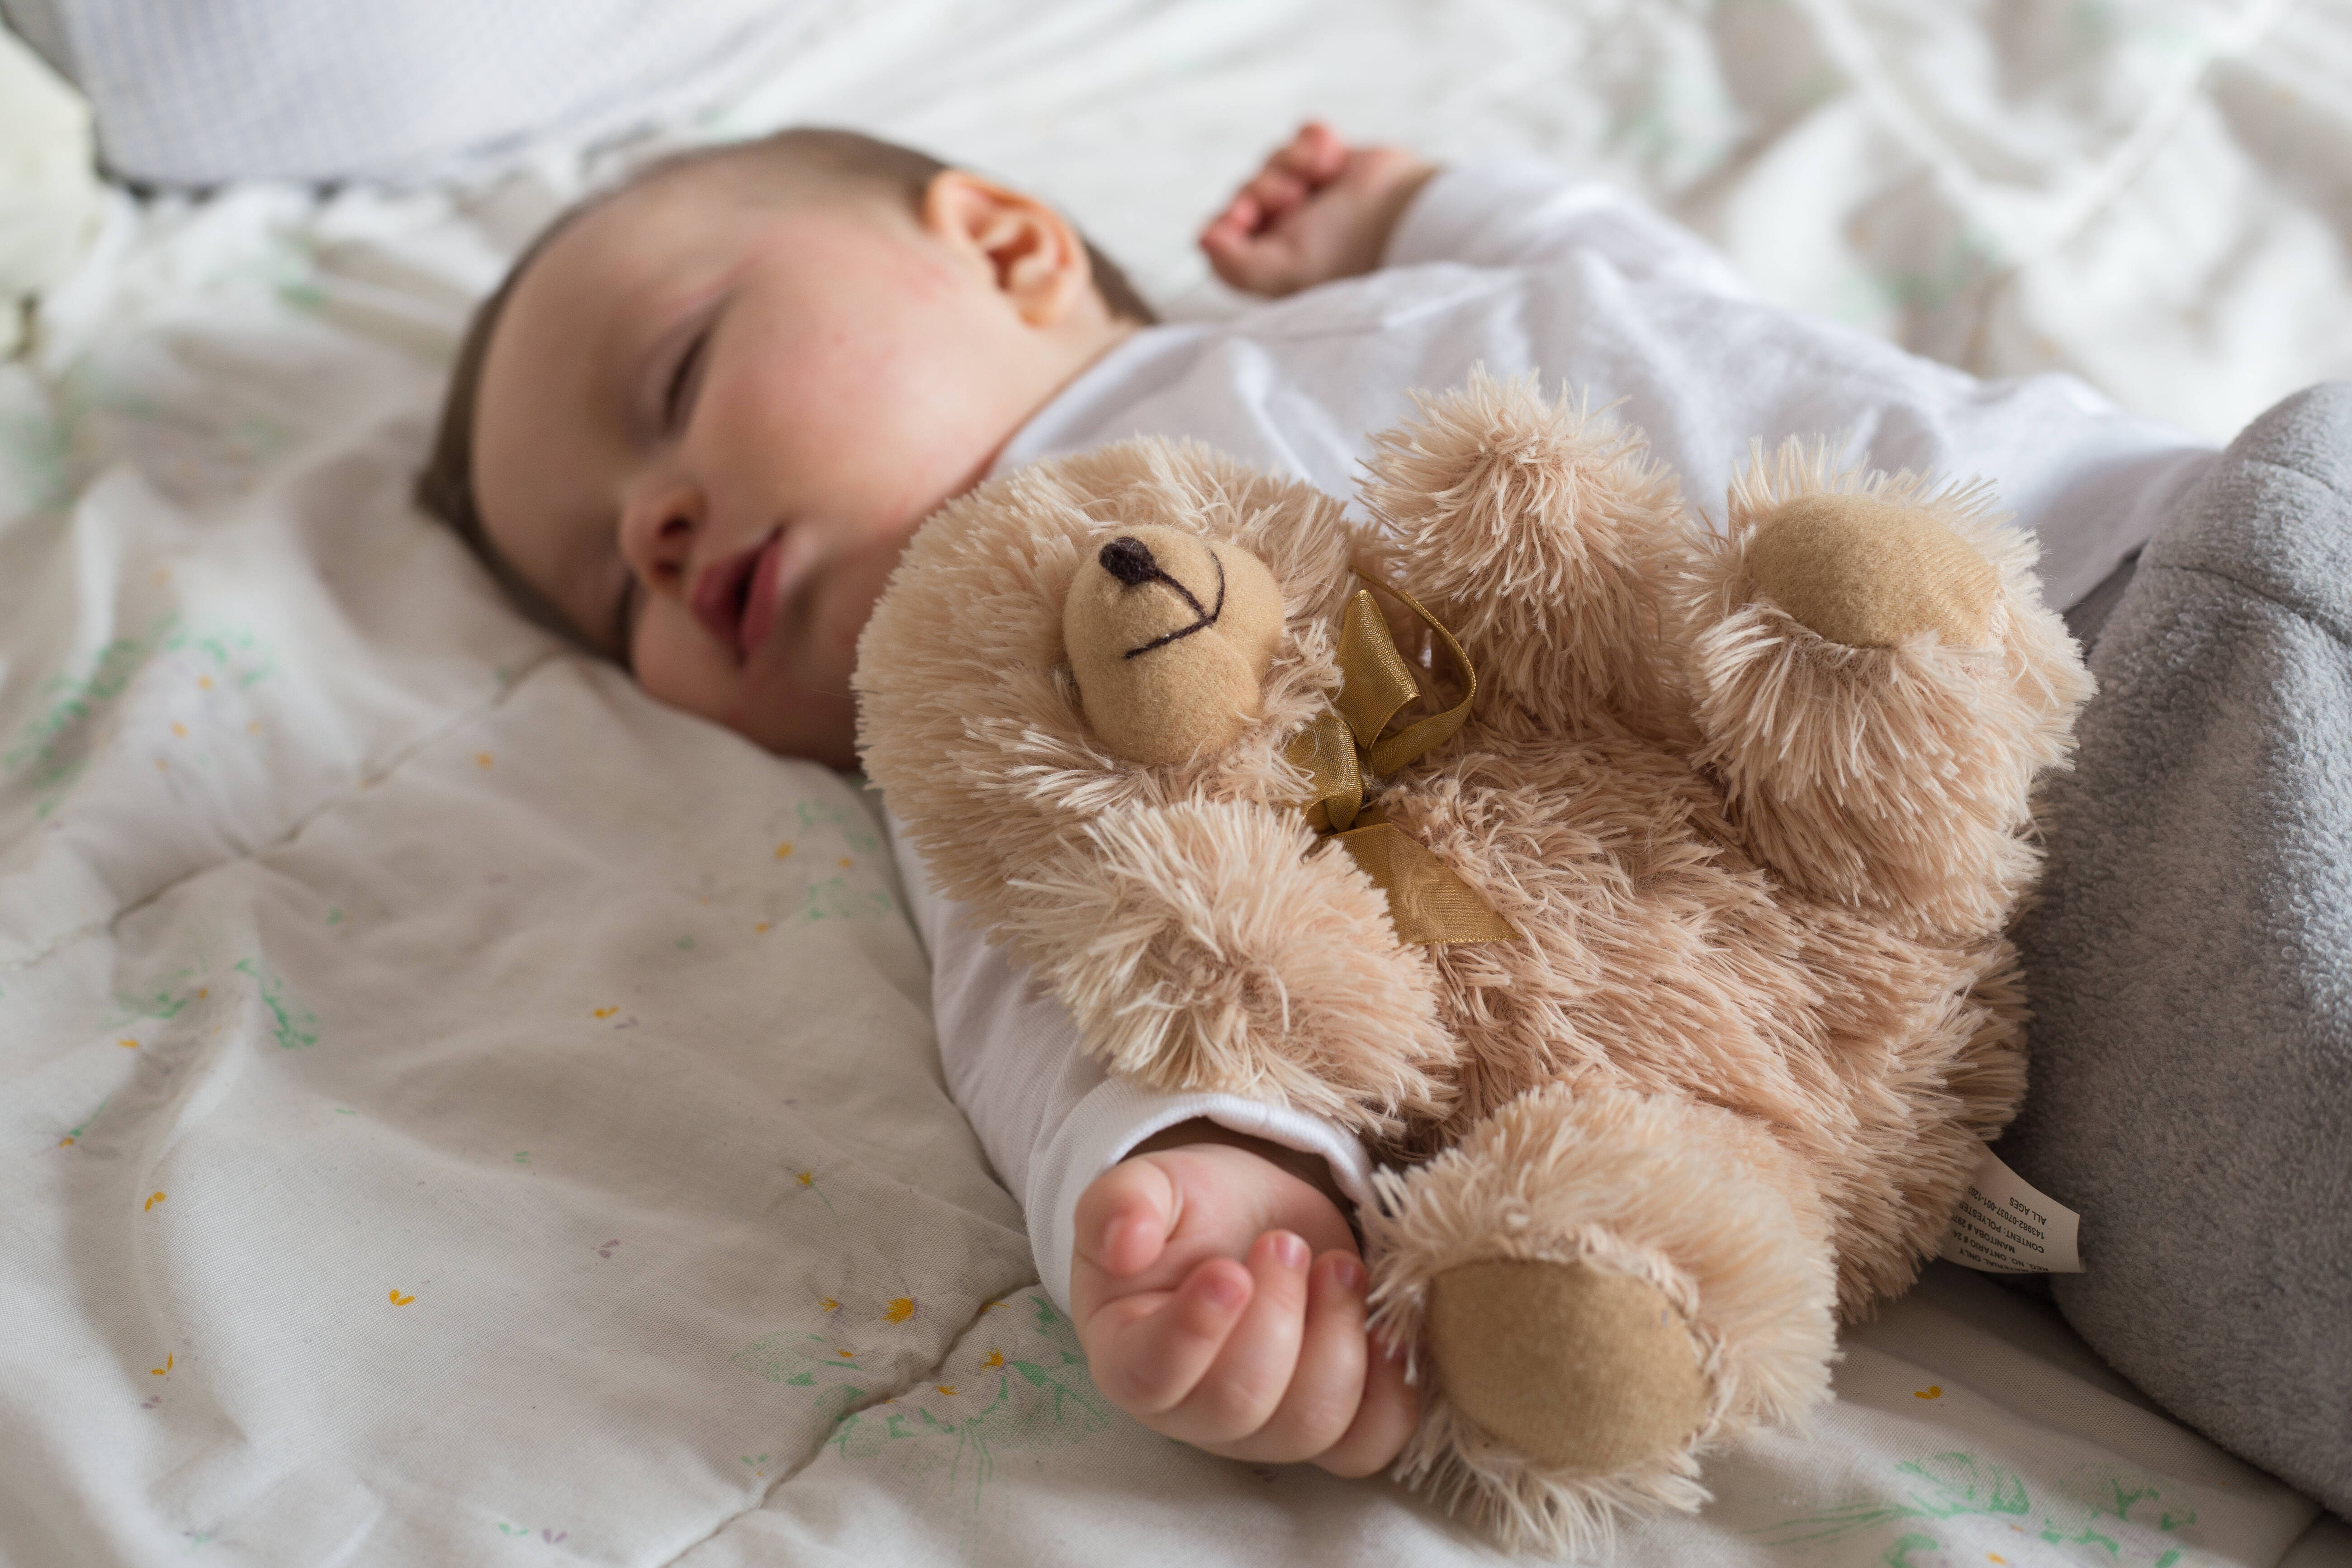 Baby sleeping in bed with a teddy bear